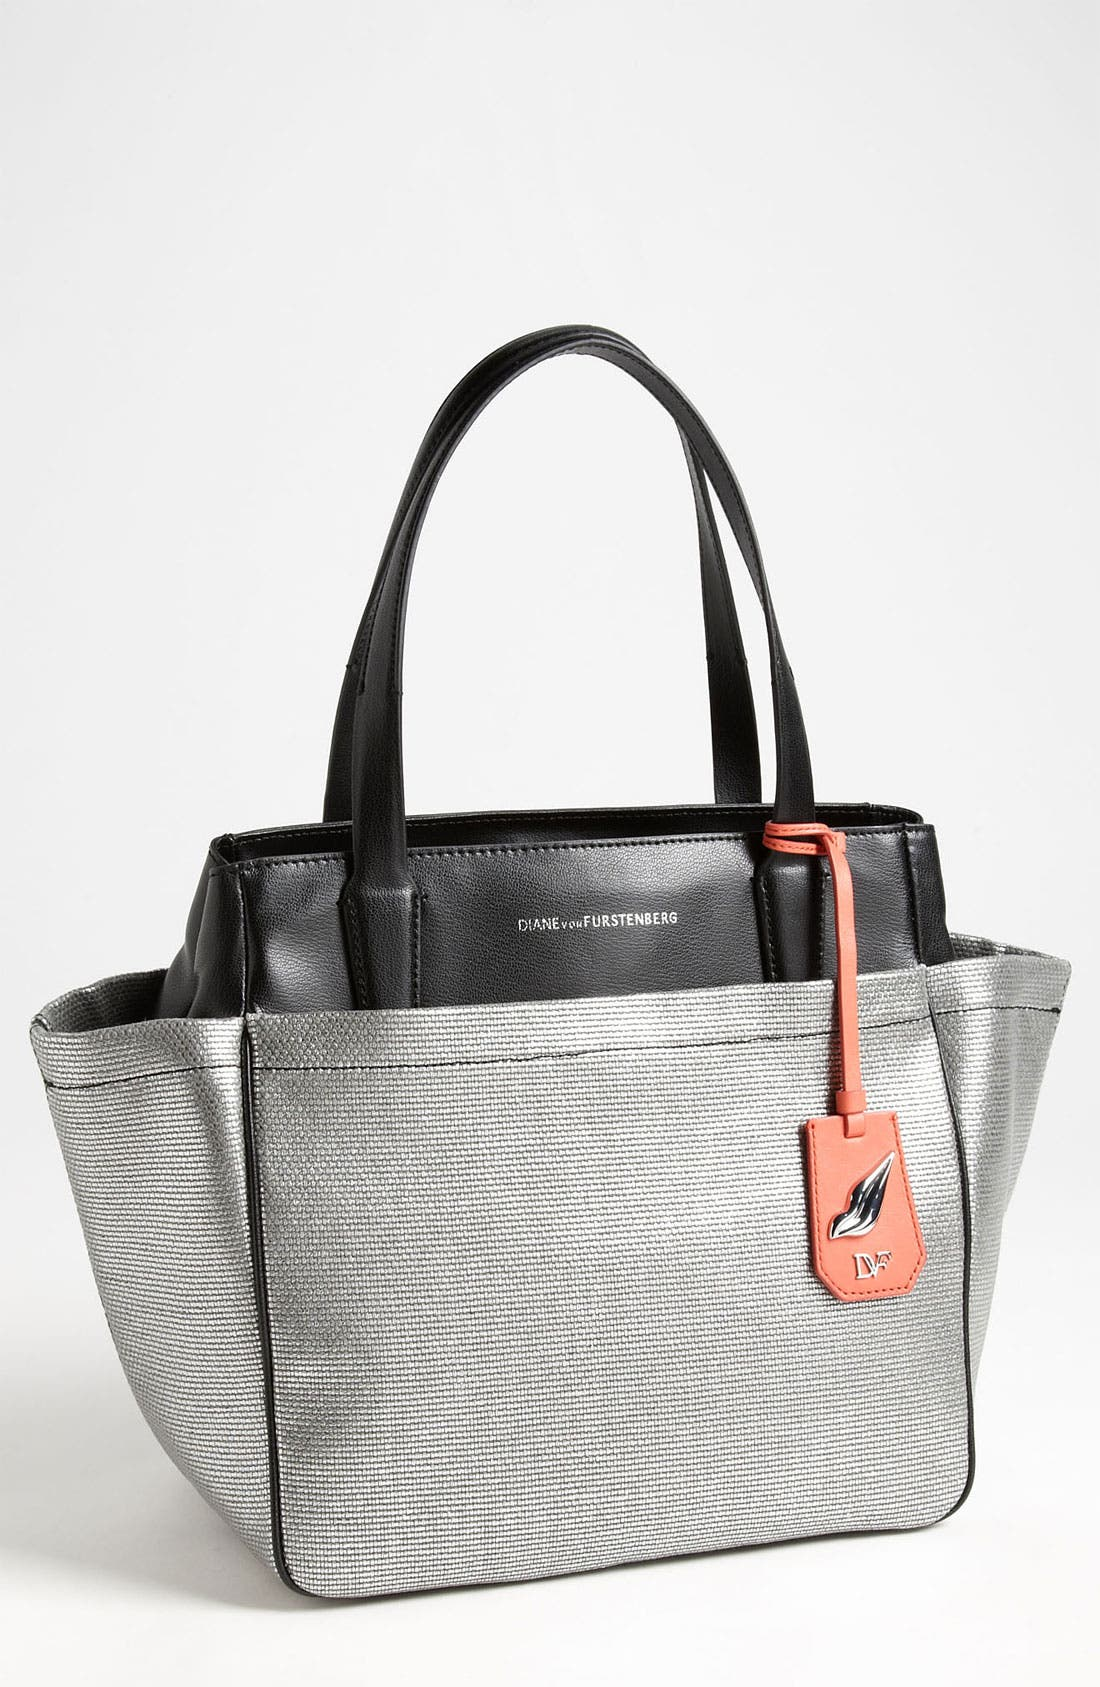 Main Image - Diane von Furstenberg 'On The Go' Metallic Canvas & Leather Tote